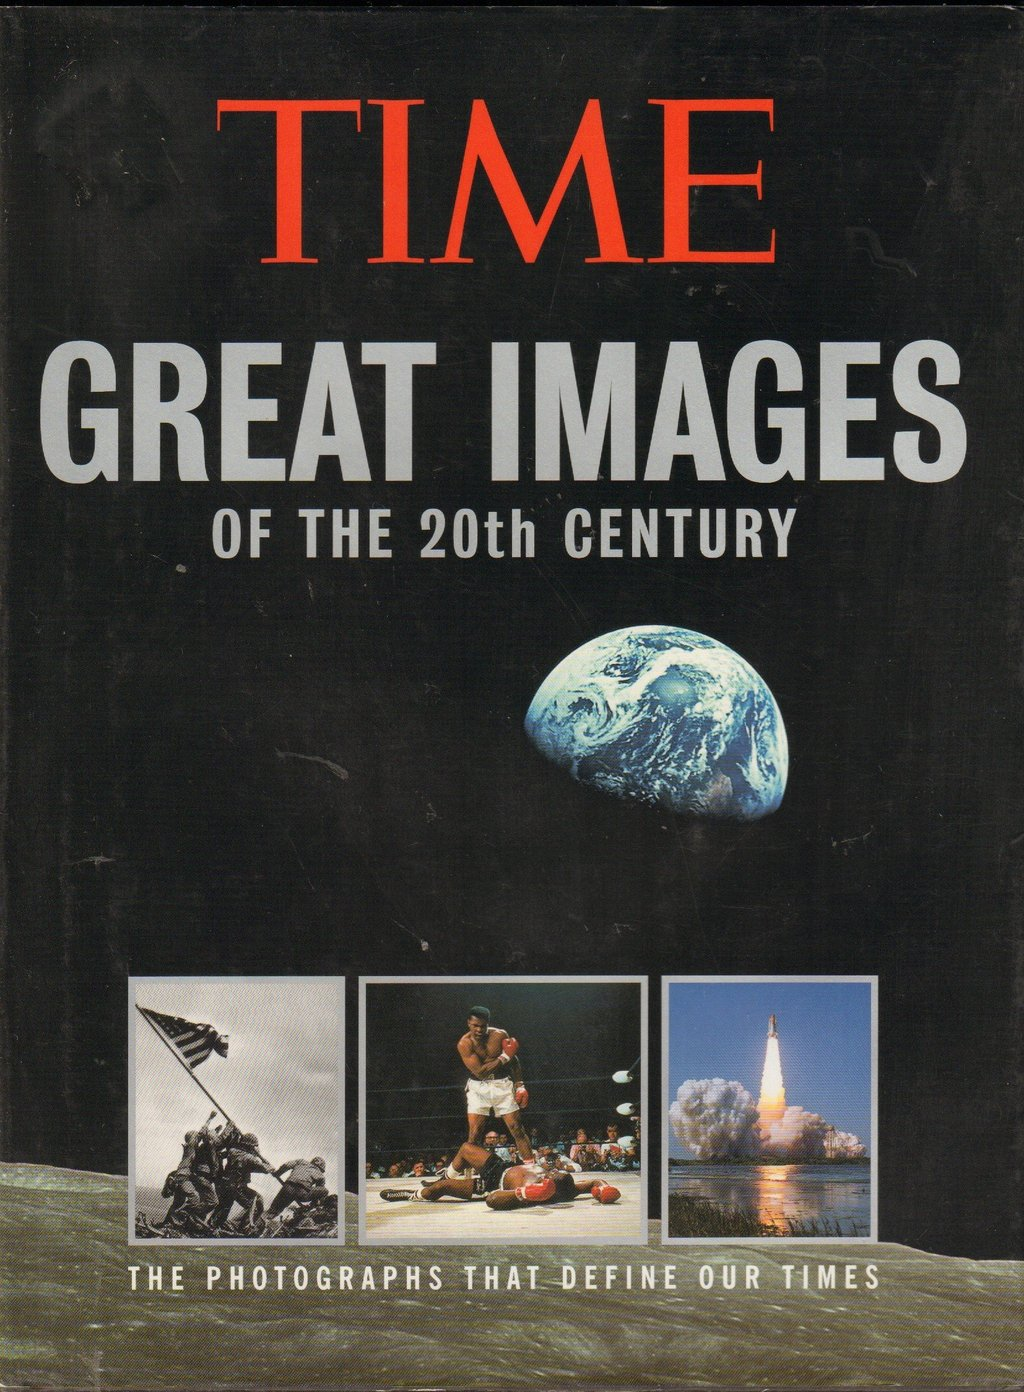 TIME GREAT IMAGES OF THE 2OTH CENTURY